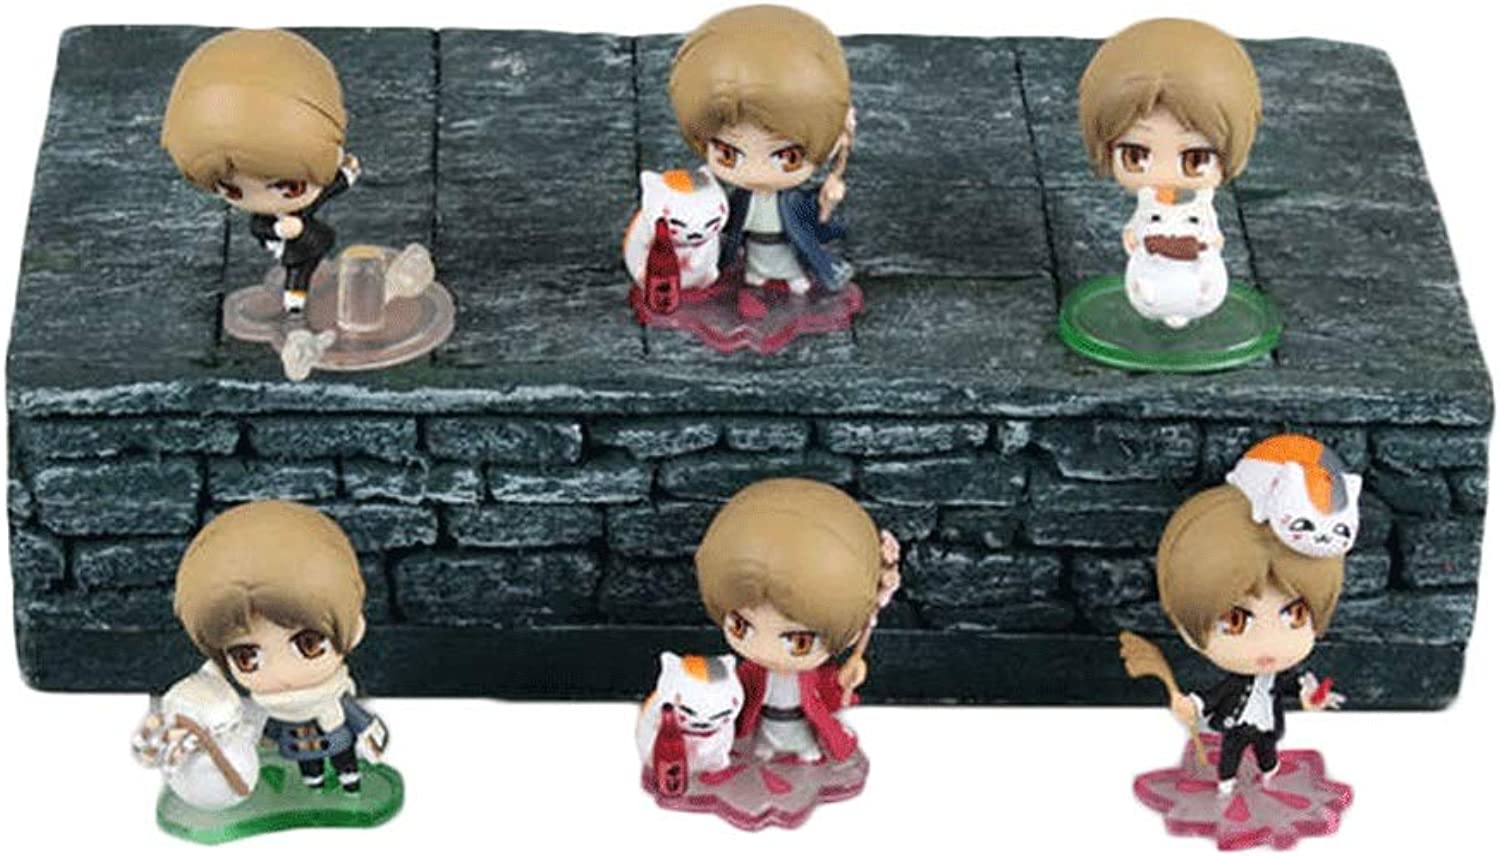 Natsume Friend Account 6 Q Versions Seasons Natsume Takashi Cat Teacher Action Figure About 1.5 Inches High